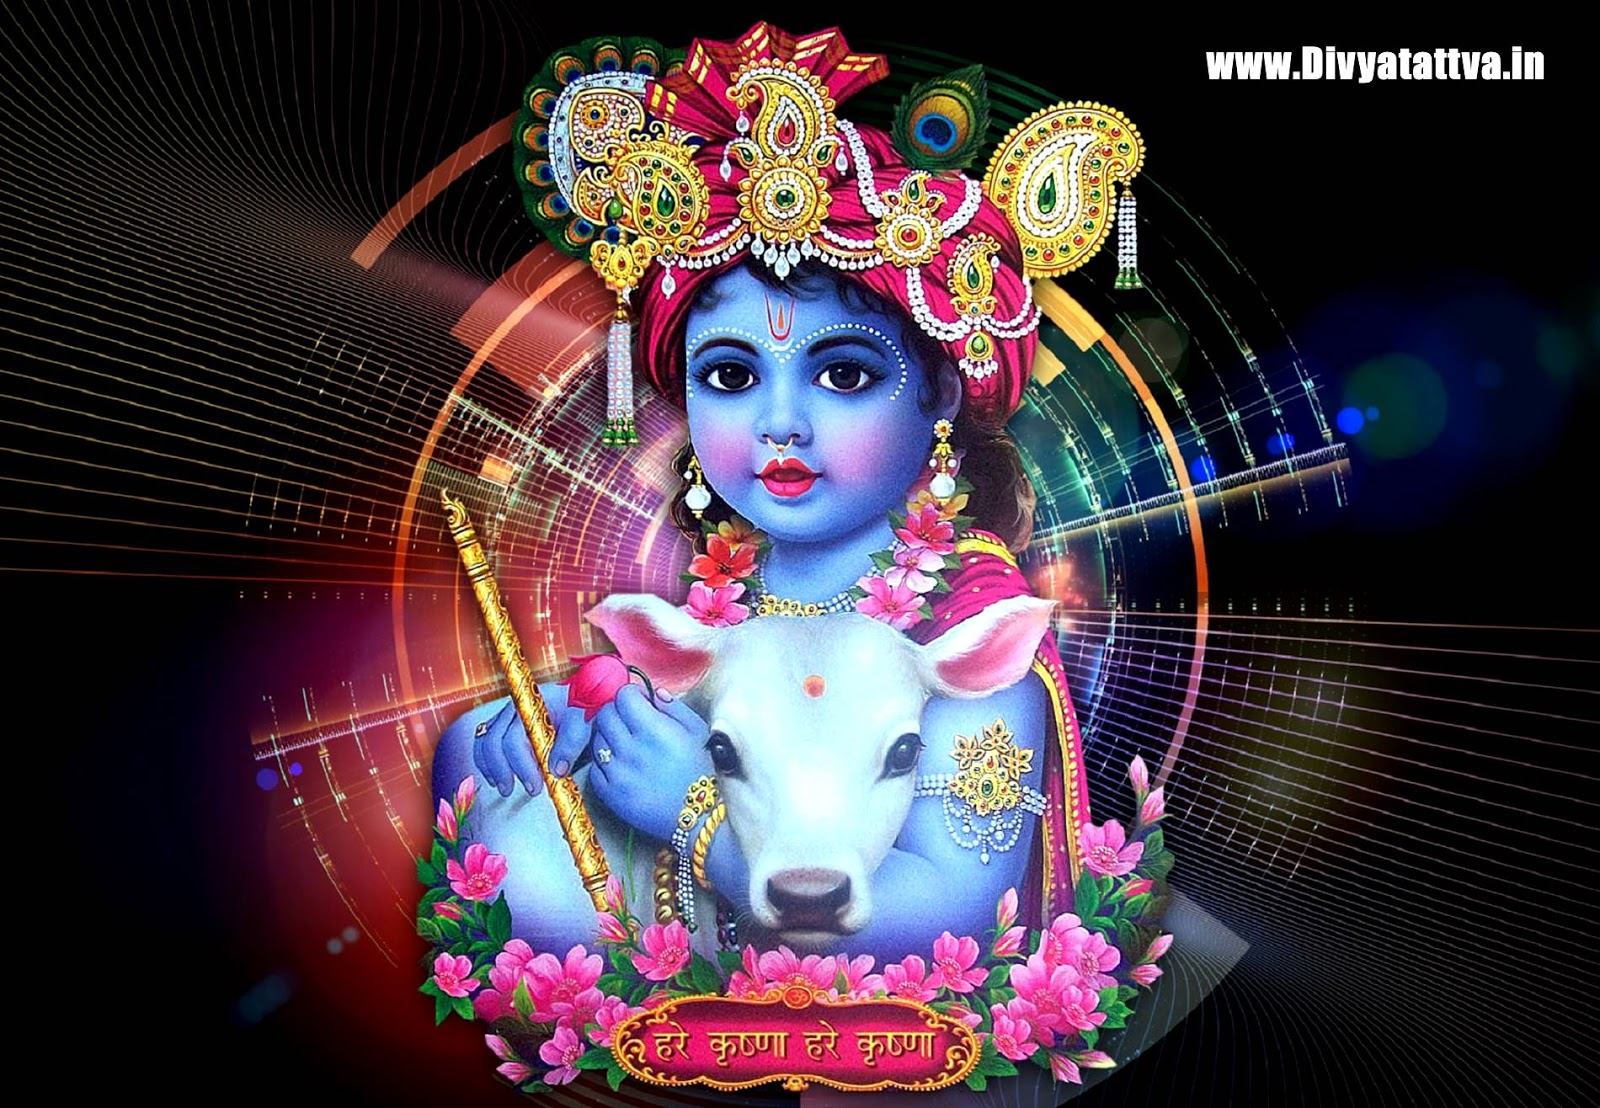 Baby Krishna Wallpaper Bal Gopala Pictures Spiritual Gods Of India Photos Shree Wallpapers